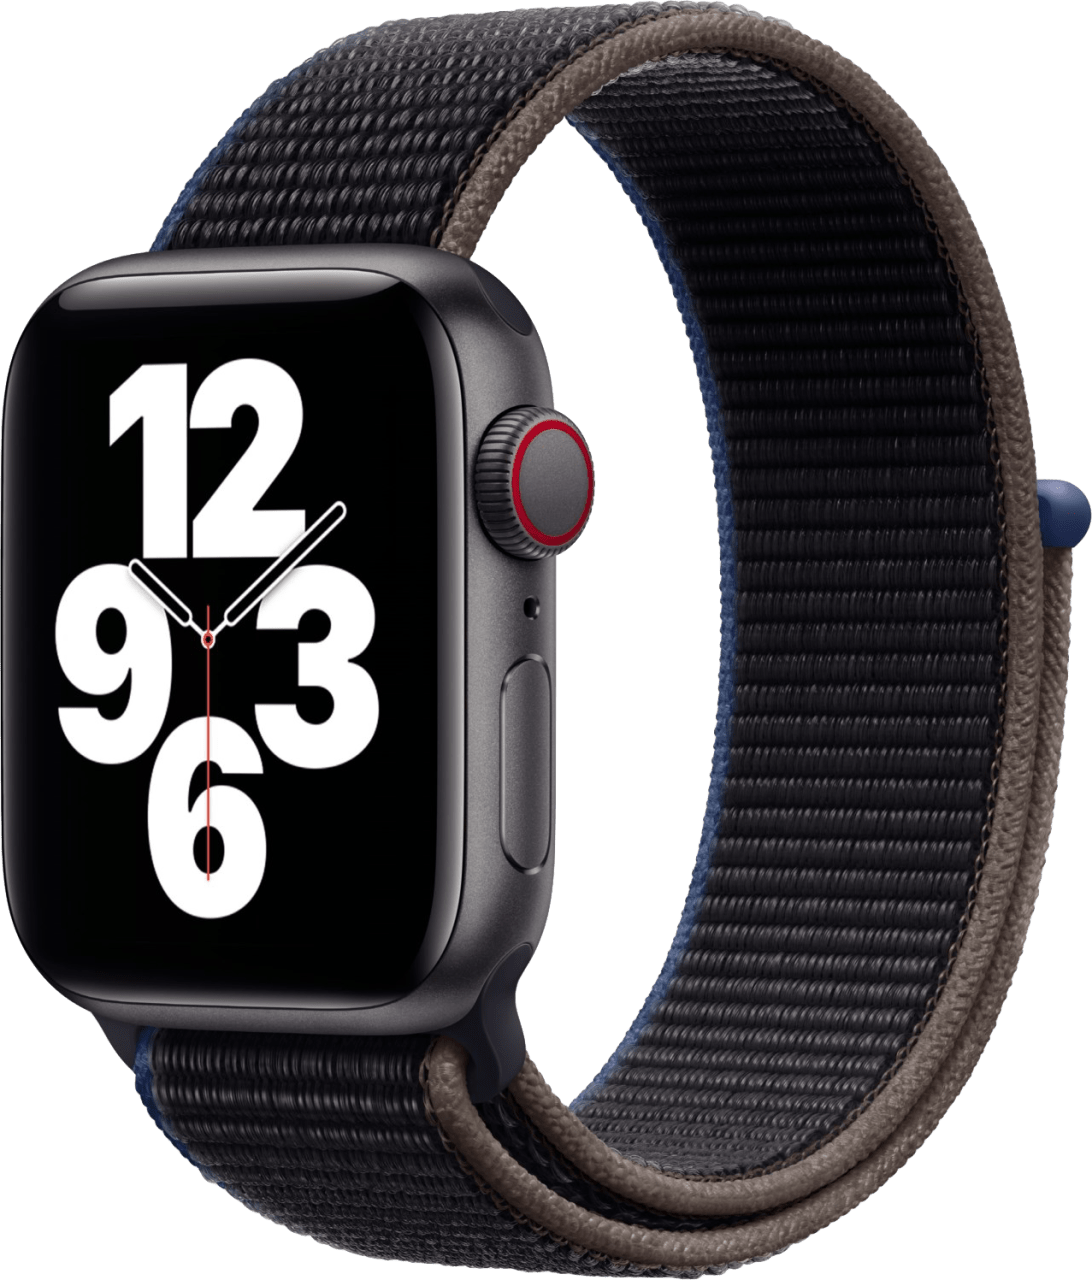 Charcoal gray Apple Watch SE GPS + Cellular, 44mm.1